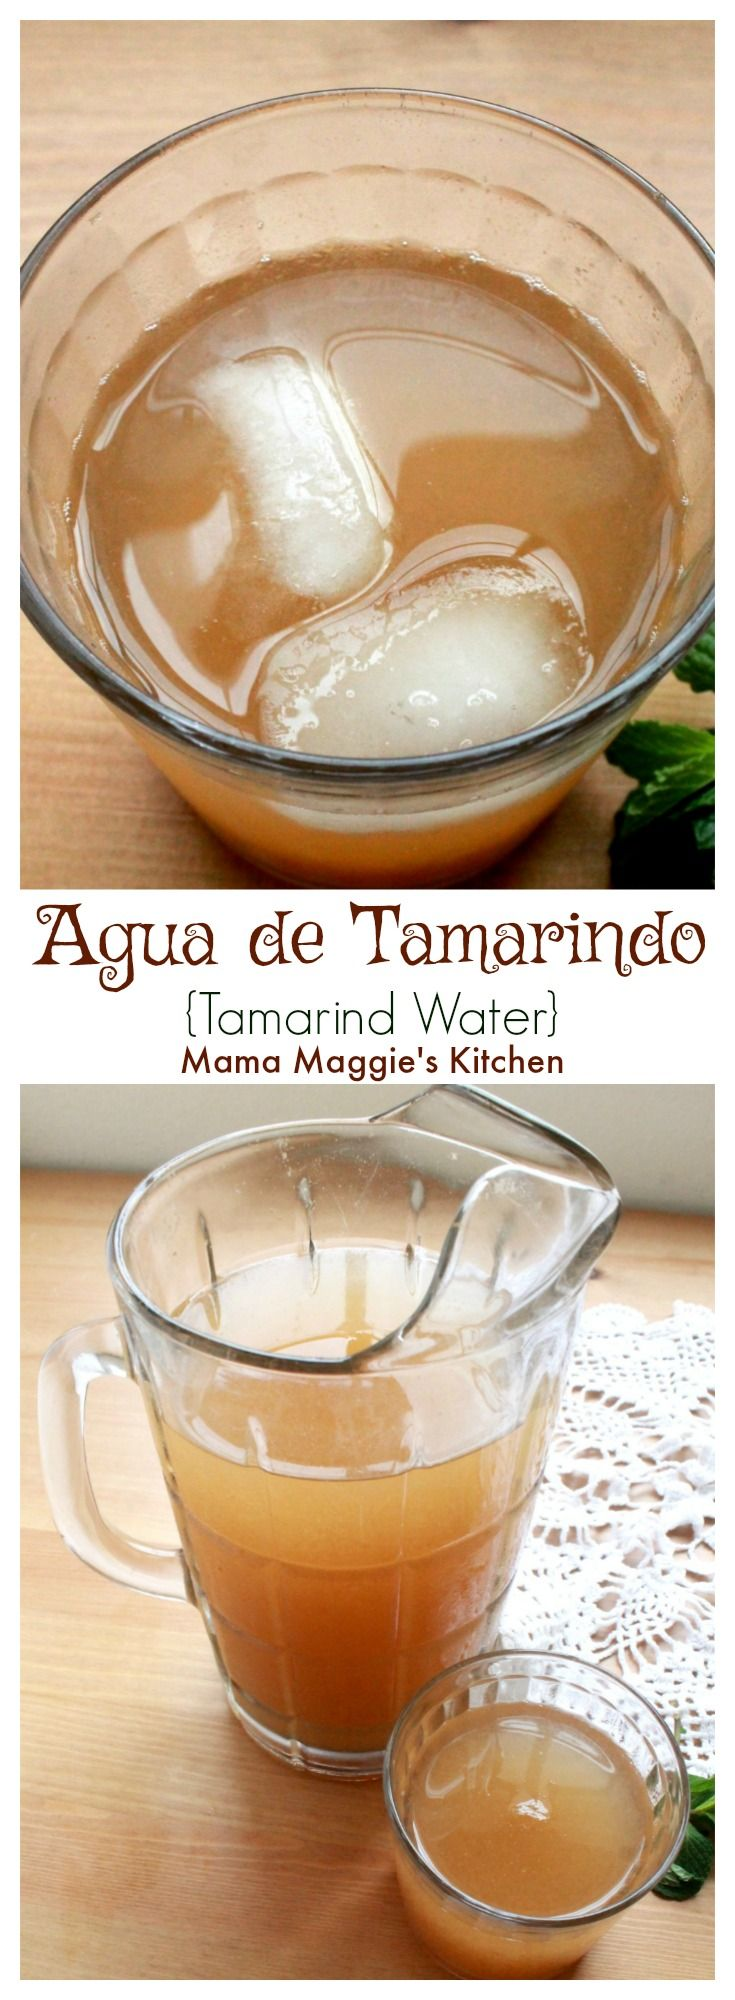 Agua de Tamarindo, or Tamarind Water, is a classic Mexican agua fresca. This refreshing drink is tart and sweet that you are sure to love. By Mama Maggie's Kitchen